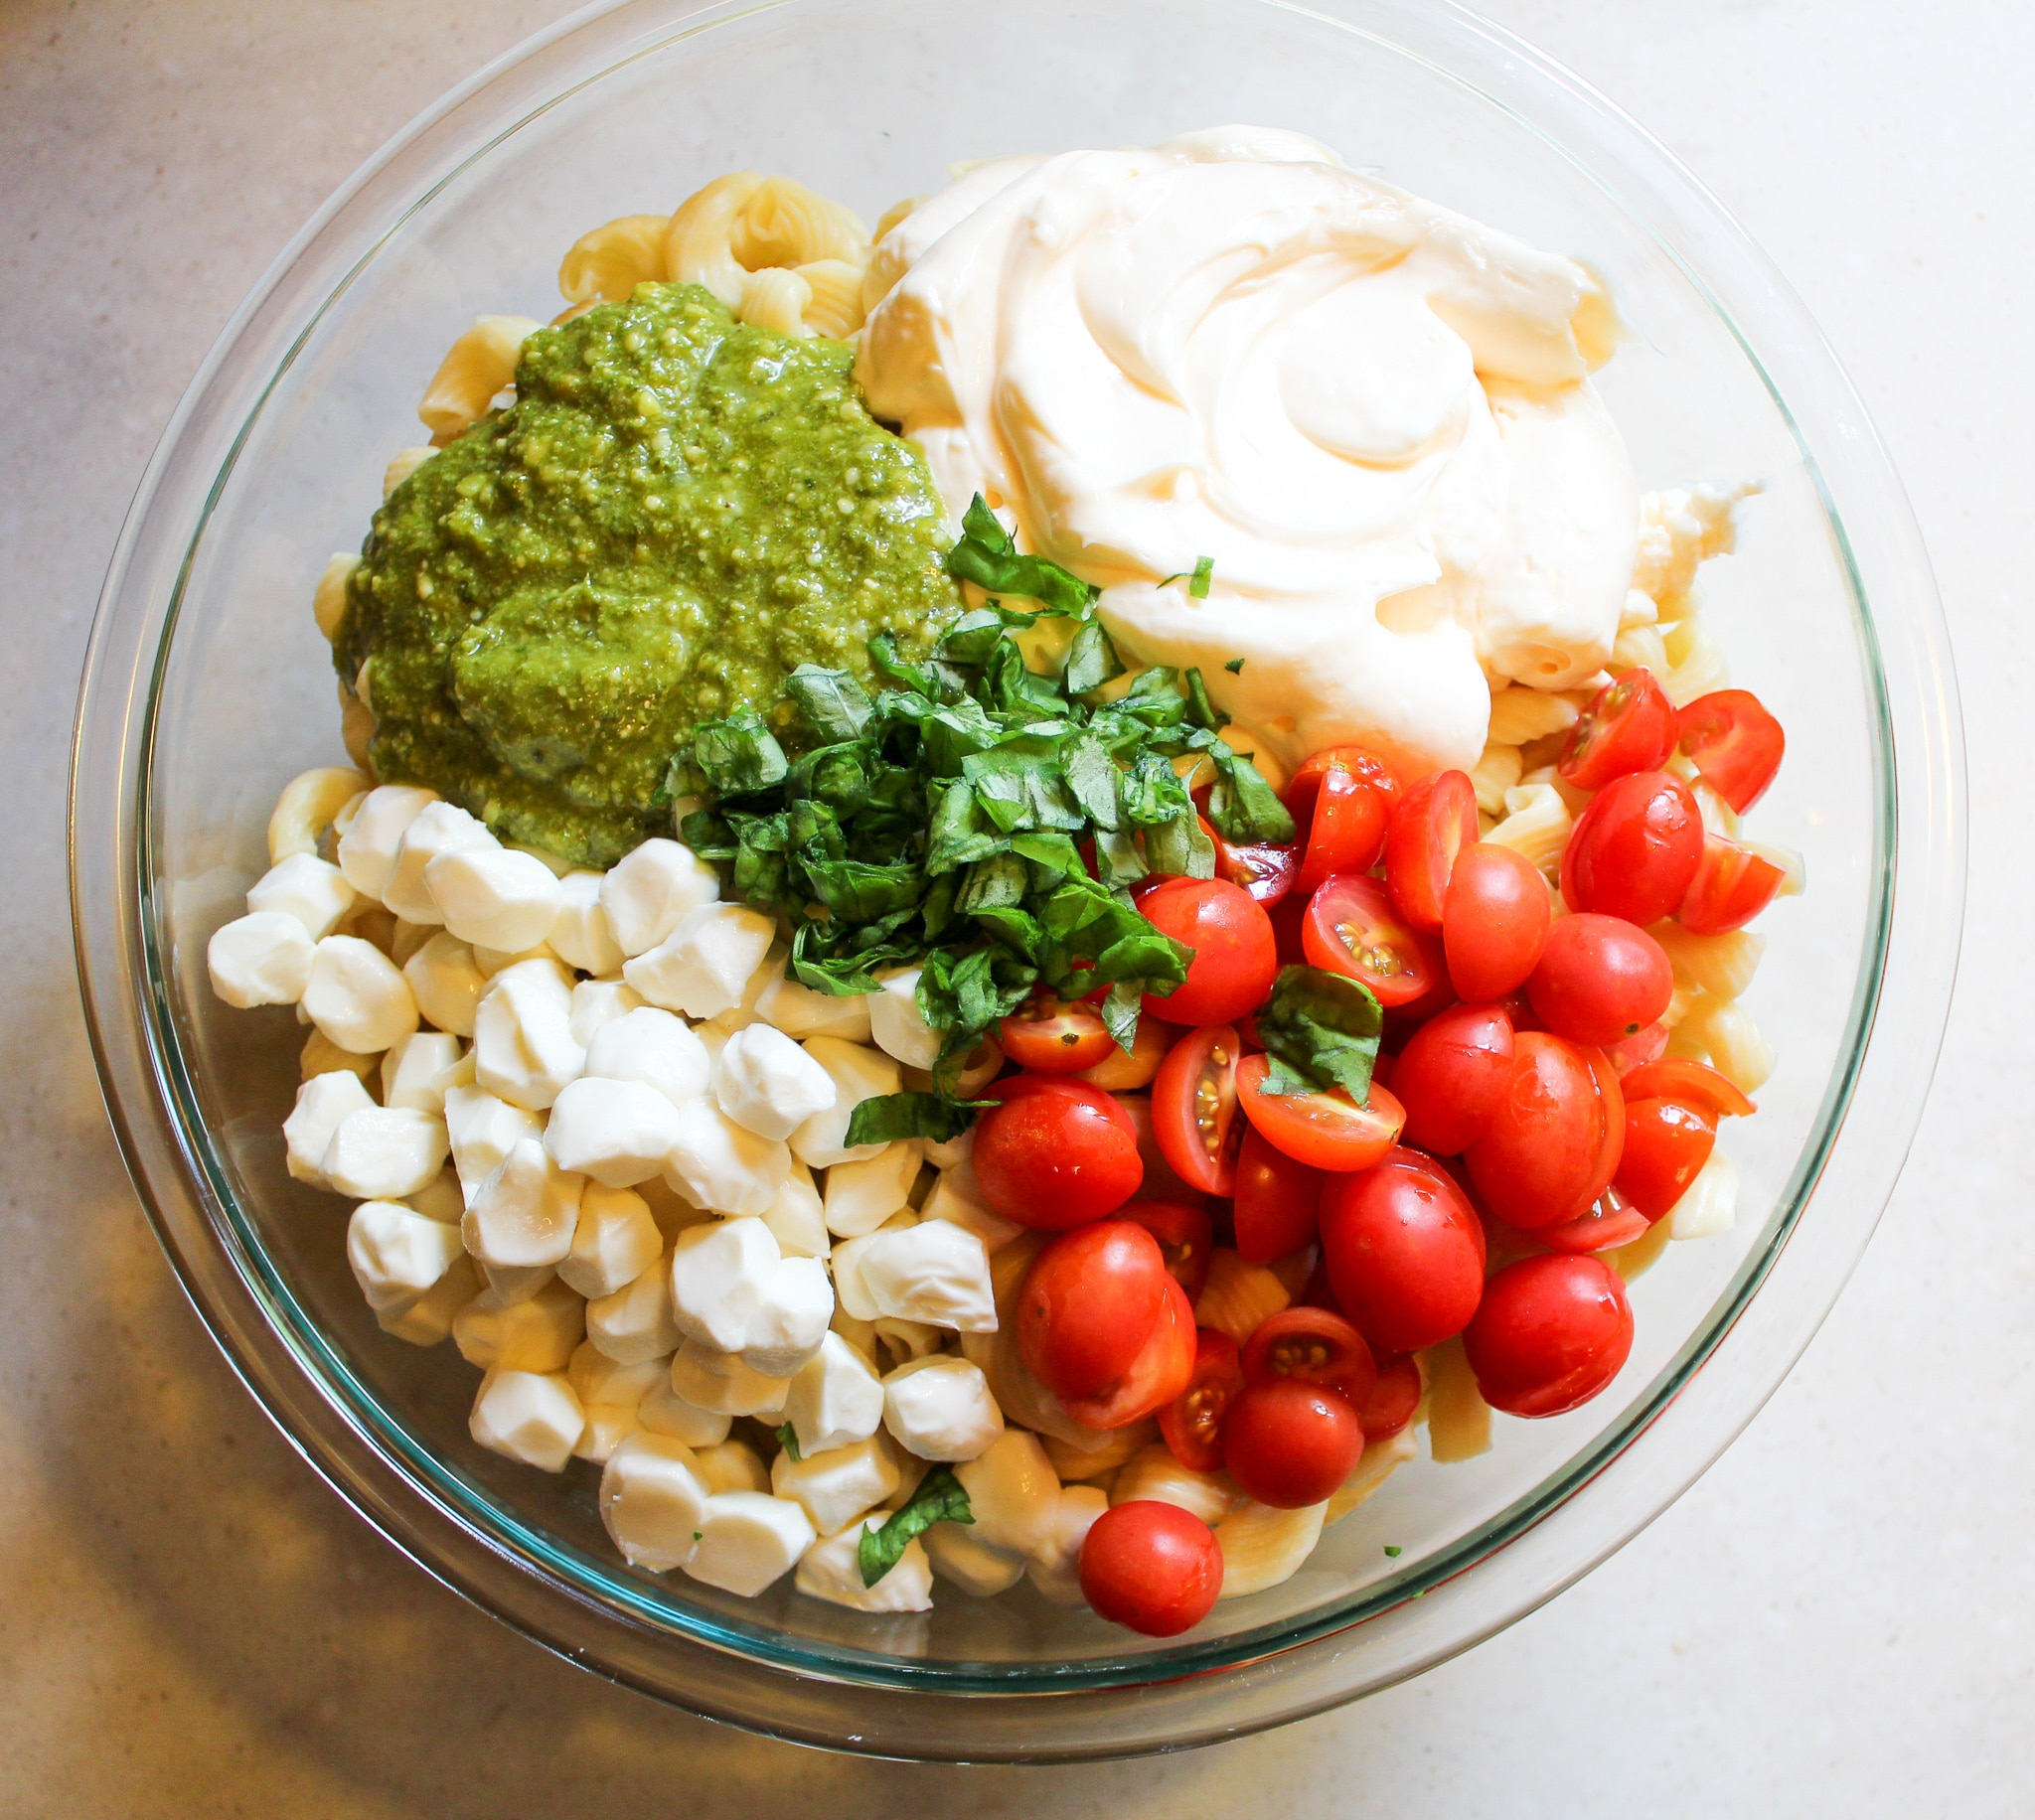 bowl of plain noodles with mayo, pesto, cheese, tomatoes, and basil